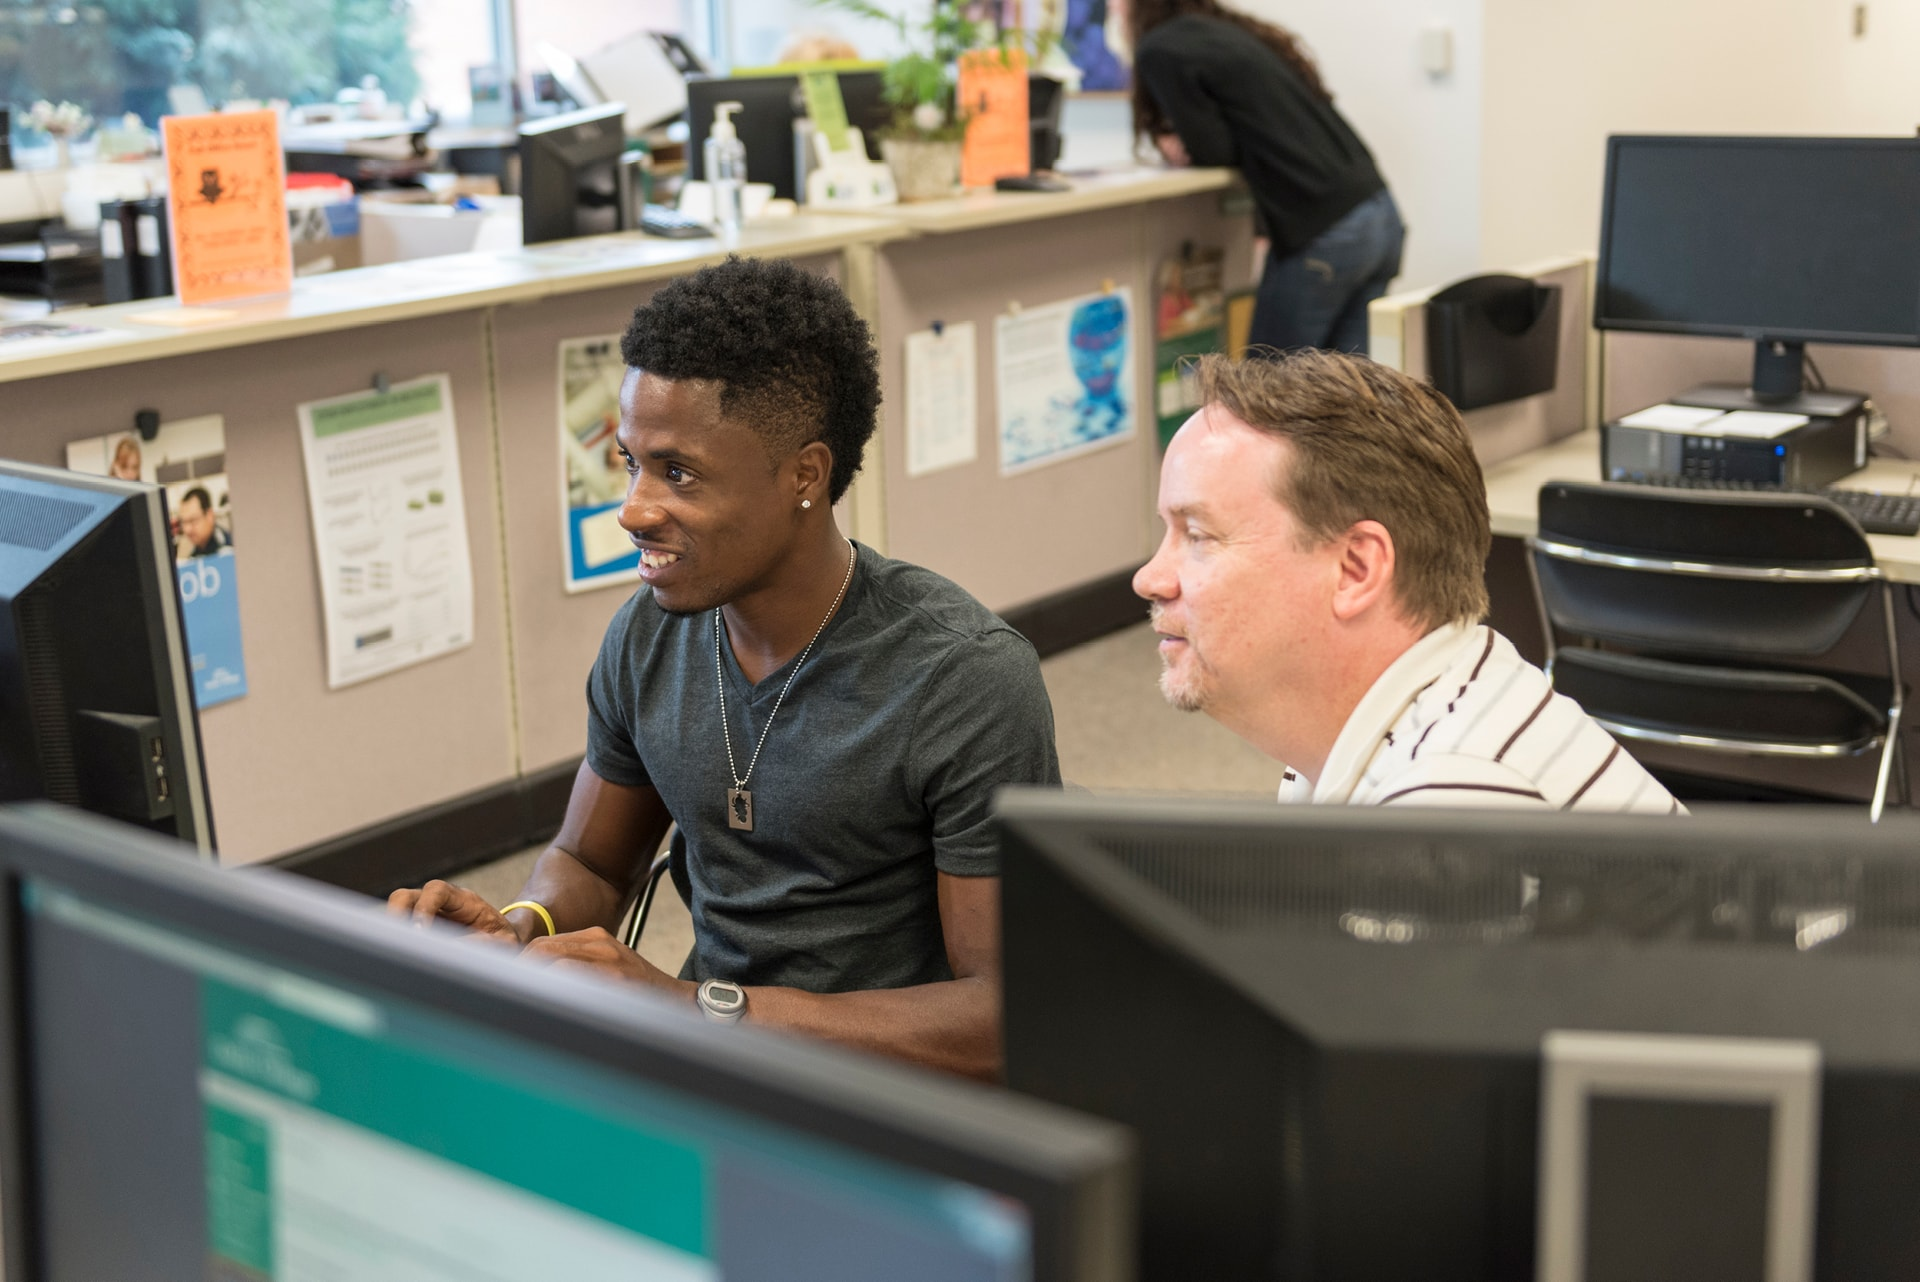 Student working on computer with an advisor